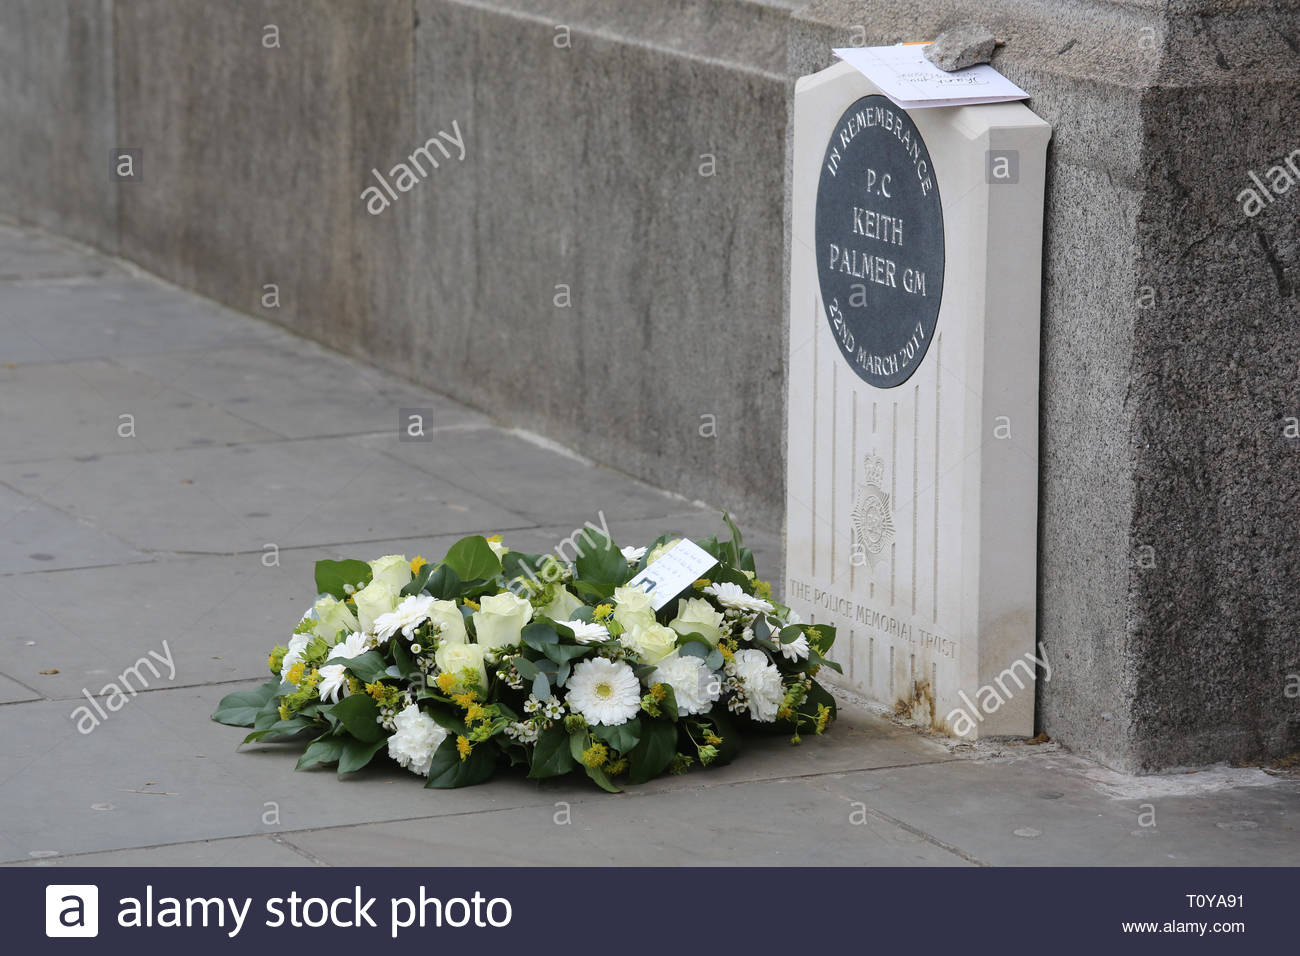 London, UK. 22nd Mar, 2019. Today is the second anniversary of PC Keith Palmer's death which occurred during the attack on London Bridge and parliament. Fresh flowers have been placed at his memorial. Credit: Clearpix/Alamy Live News Stock Photo